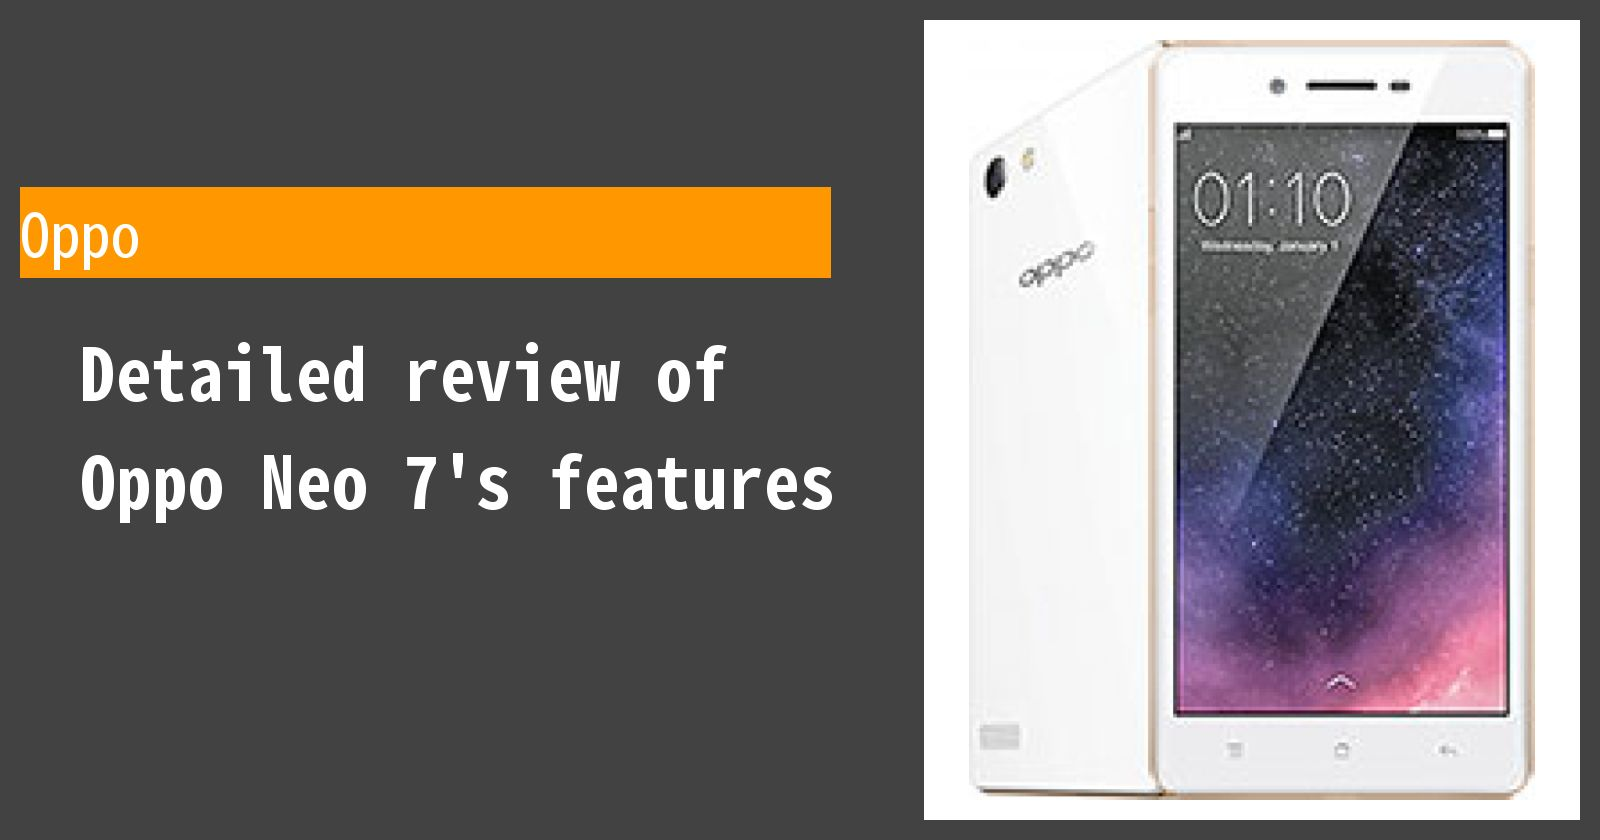 Detailed review of Oppo Neo 7's features